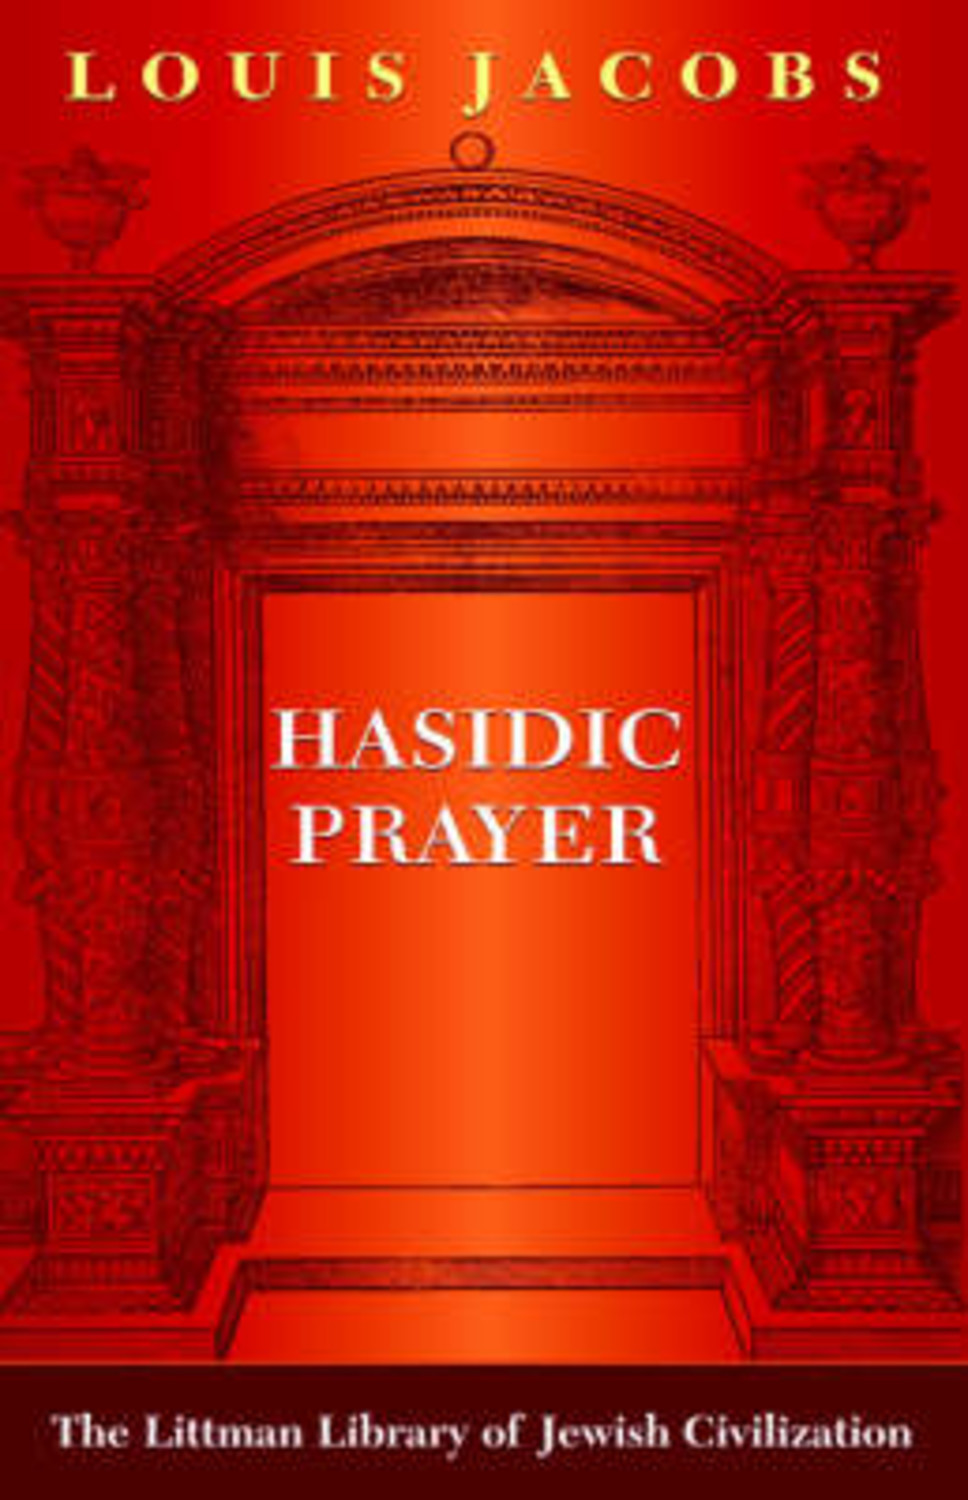 Hasidic Prayer: With a New Introduction